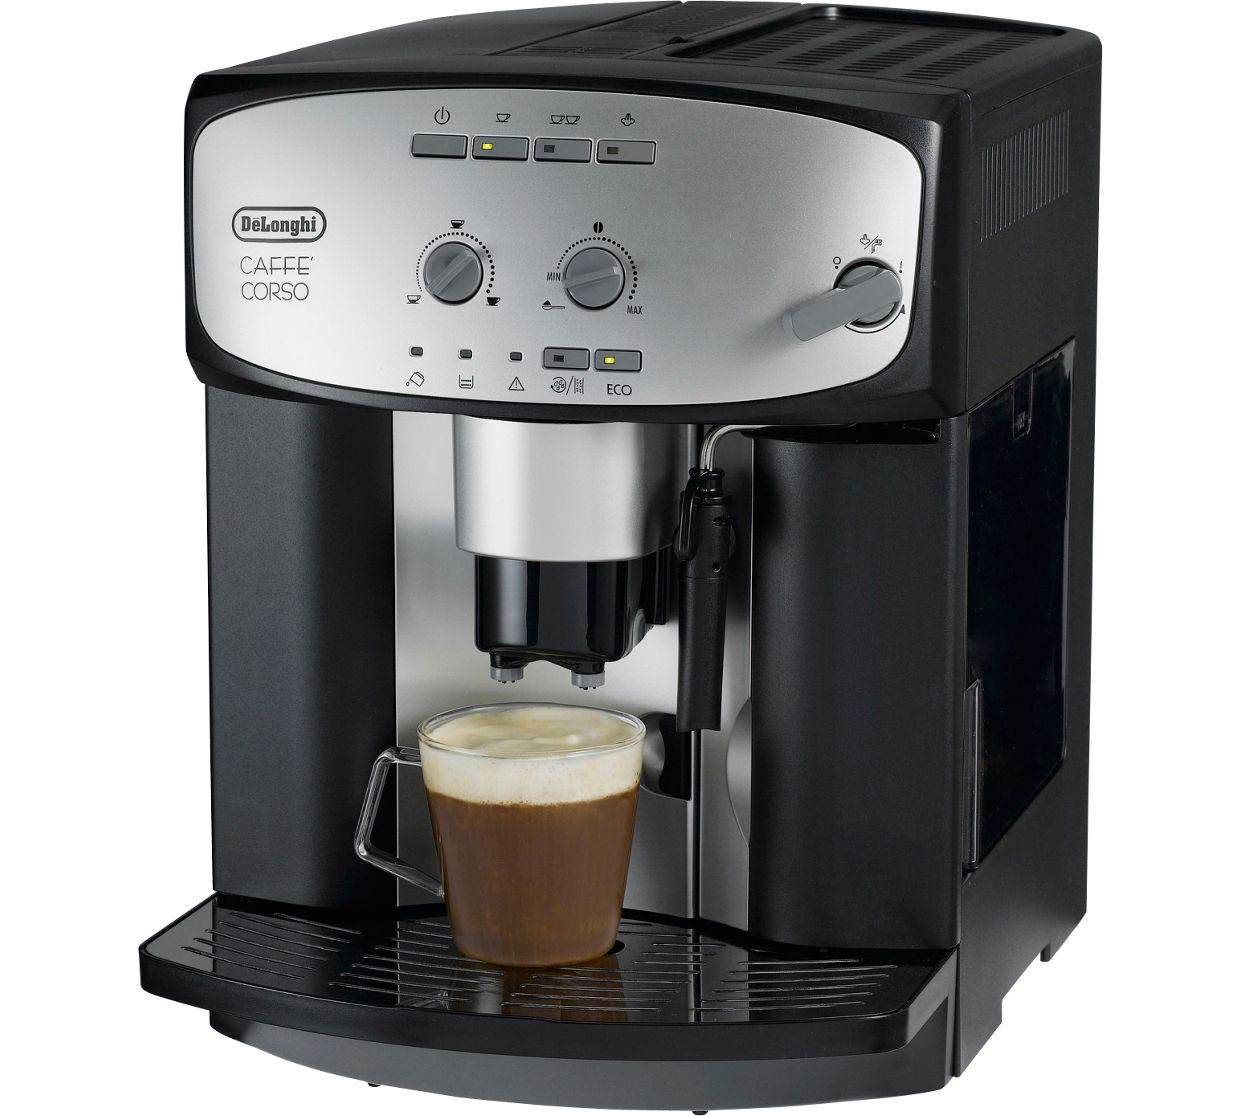 de longhi esam2800 cafe corso bean to cup coffee machine. Black Bedroom Furniture Sets. Home Design Ideas